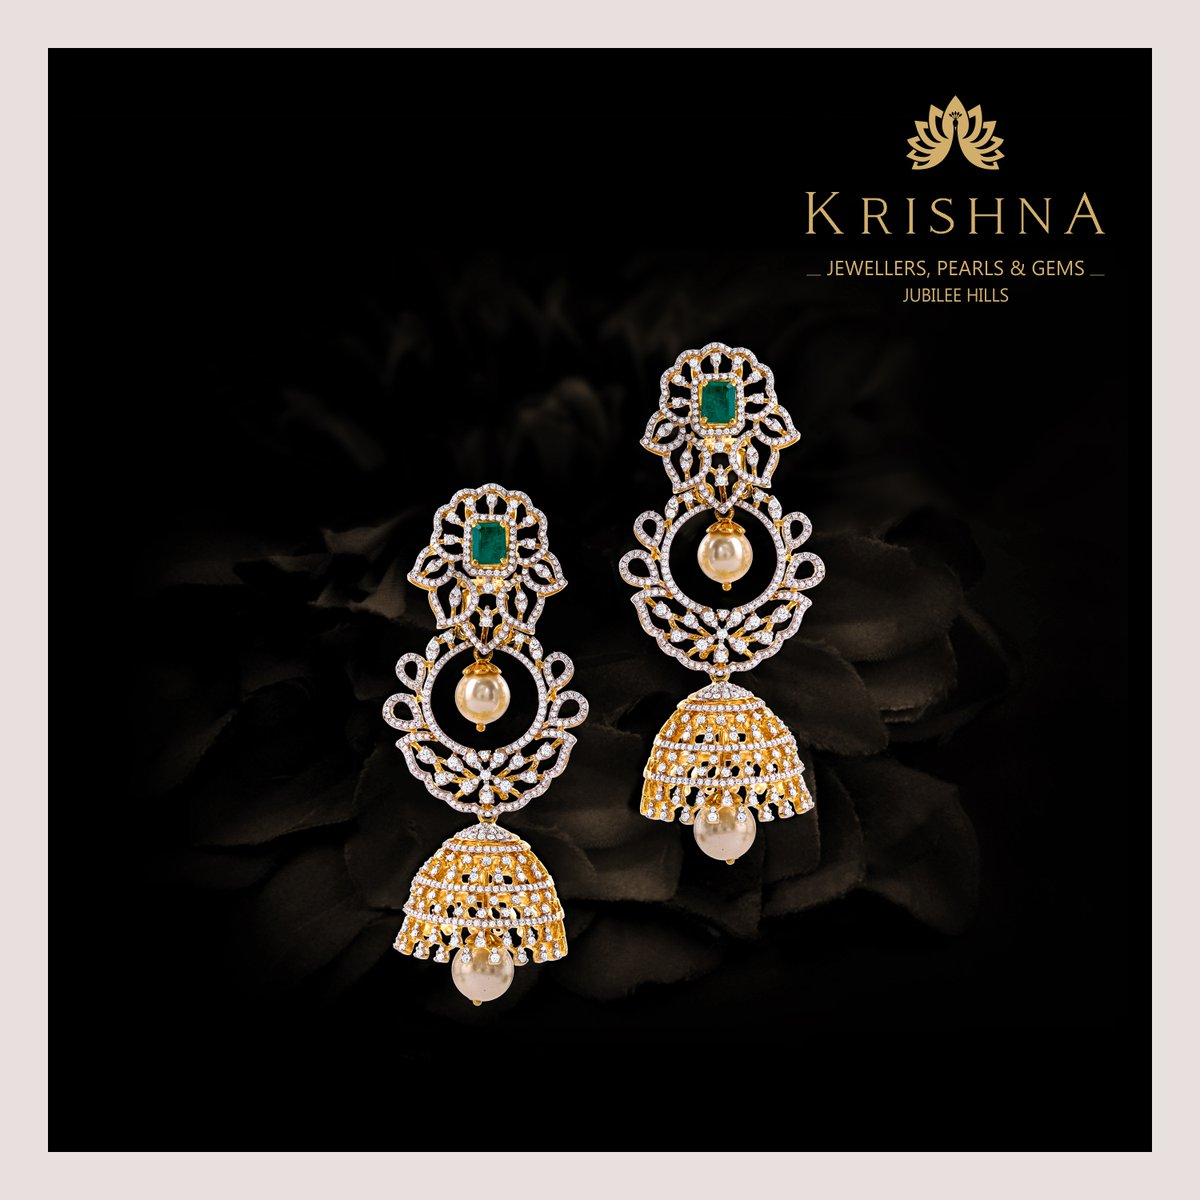 Pretty Diamond chandbali, jhumka earrings crafted in yellowing using finely assorted Diamonds, emeralds, pearls  only to the Miraculous women in the city. For more details Contact Us @ +91-7093324141. #diamondearrings #diamonds #jhumkaearrings #chandbaliearrings #earringsdesignspic.twitter.com/2swjvx7ToS